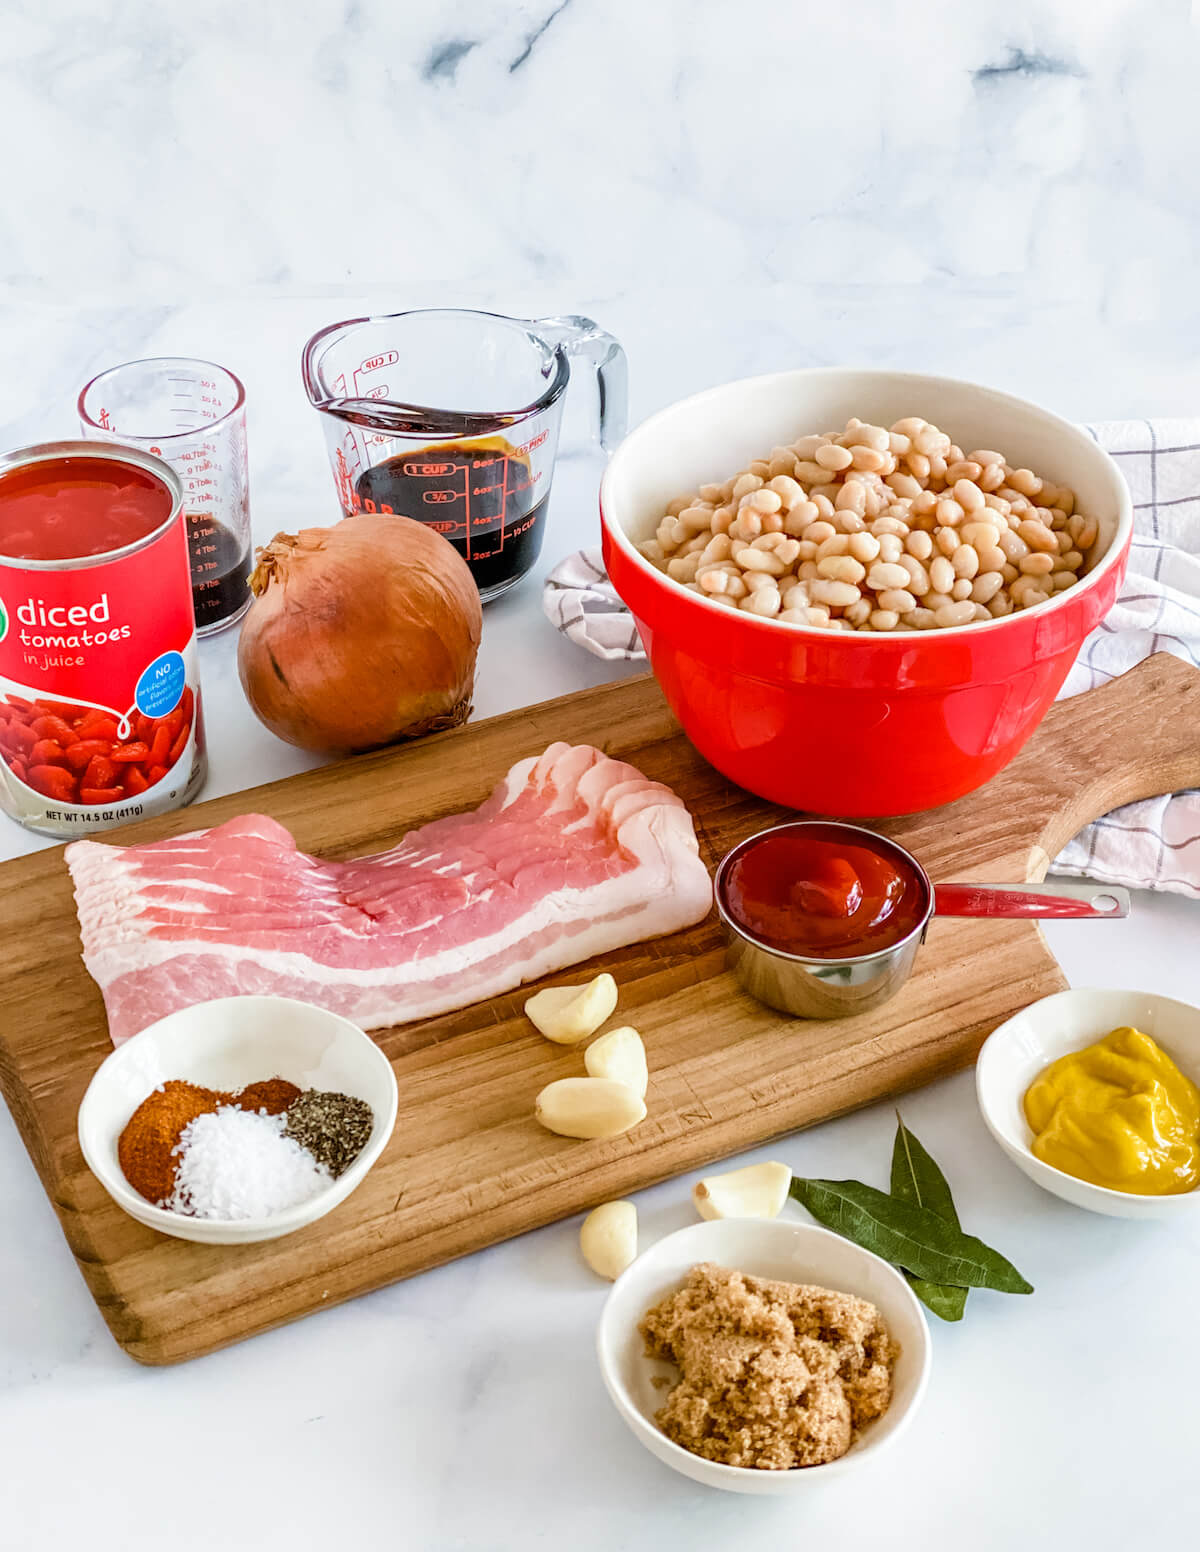 ingredients for Boston baked beans